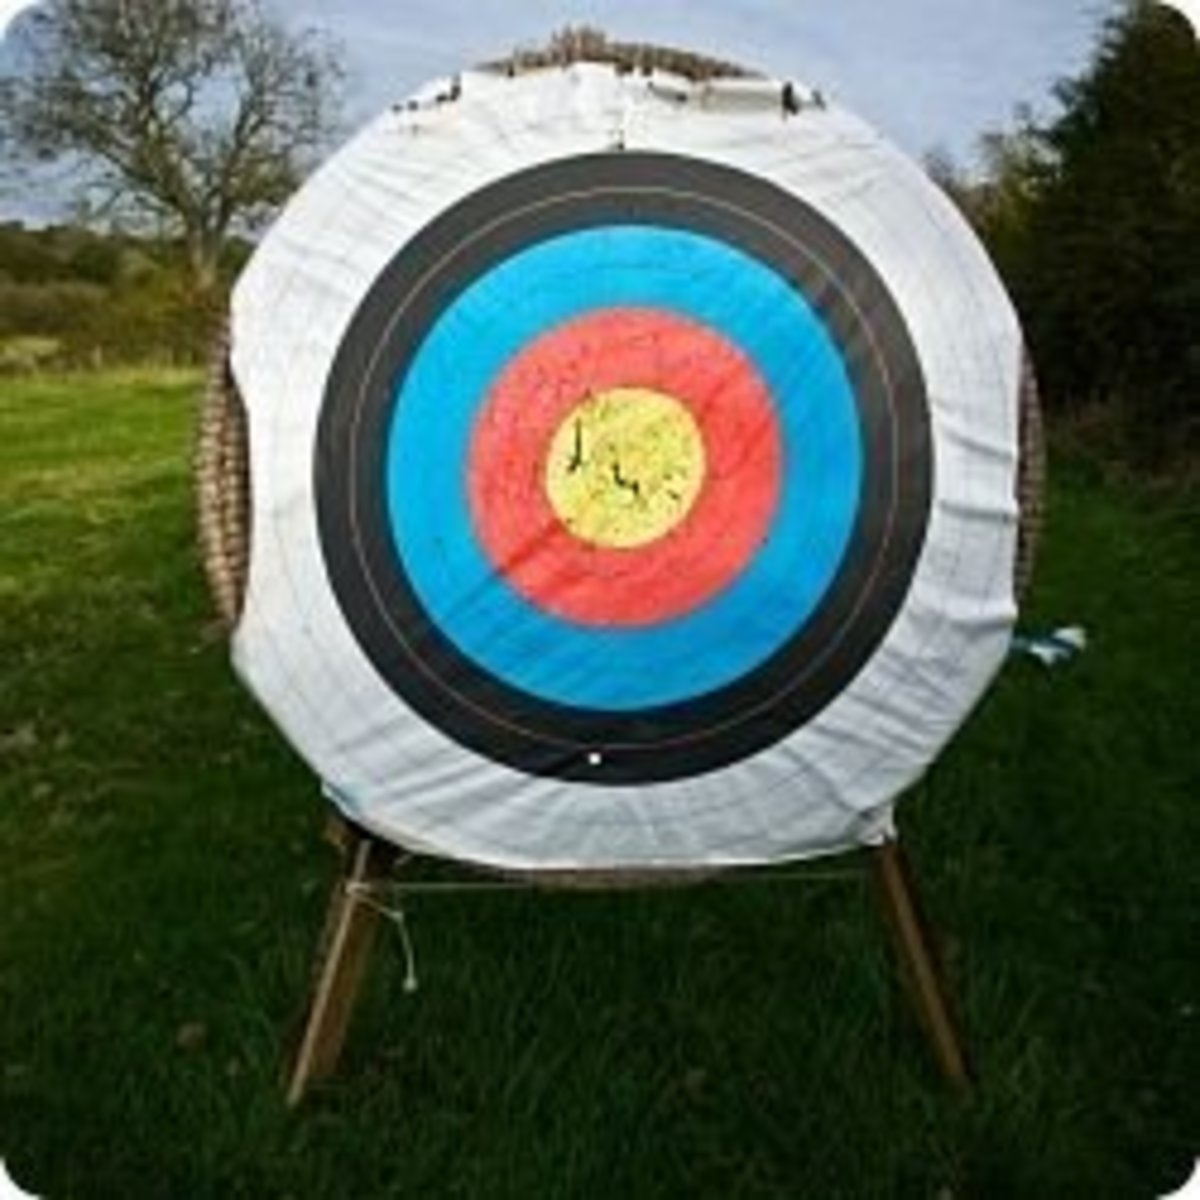 Archery Target Backstop with traditional target.